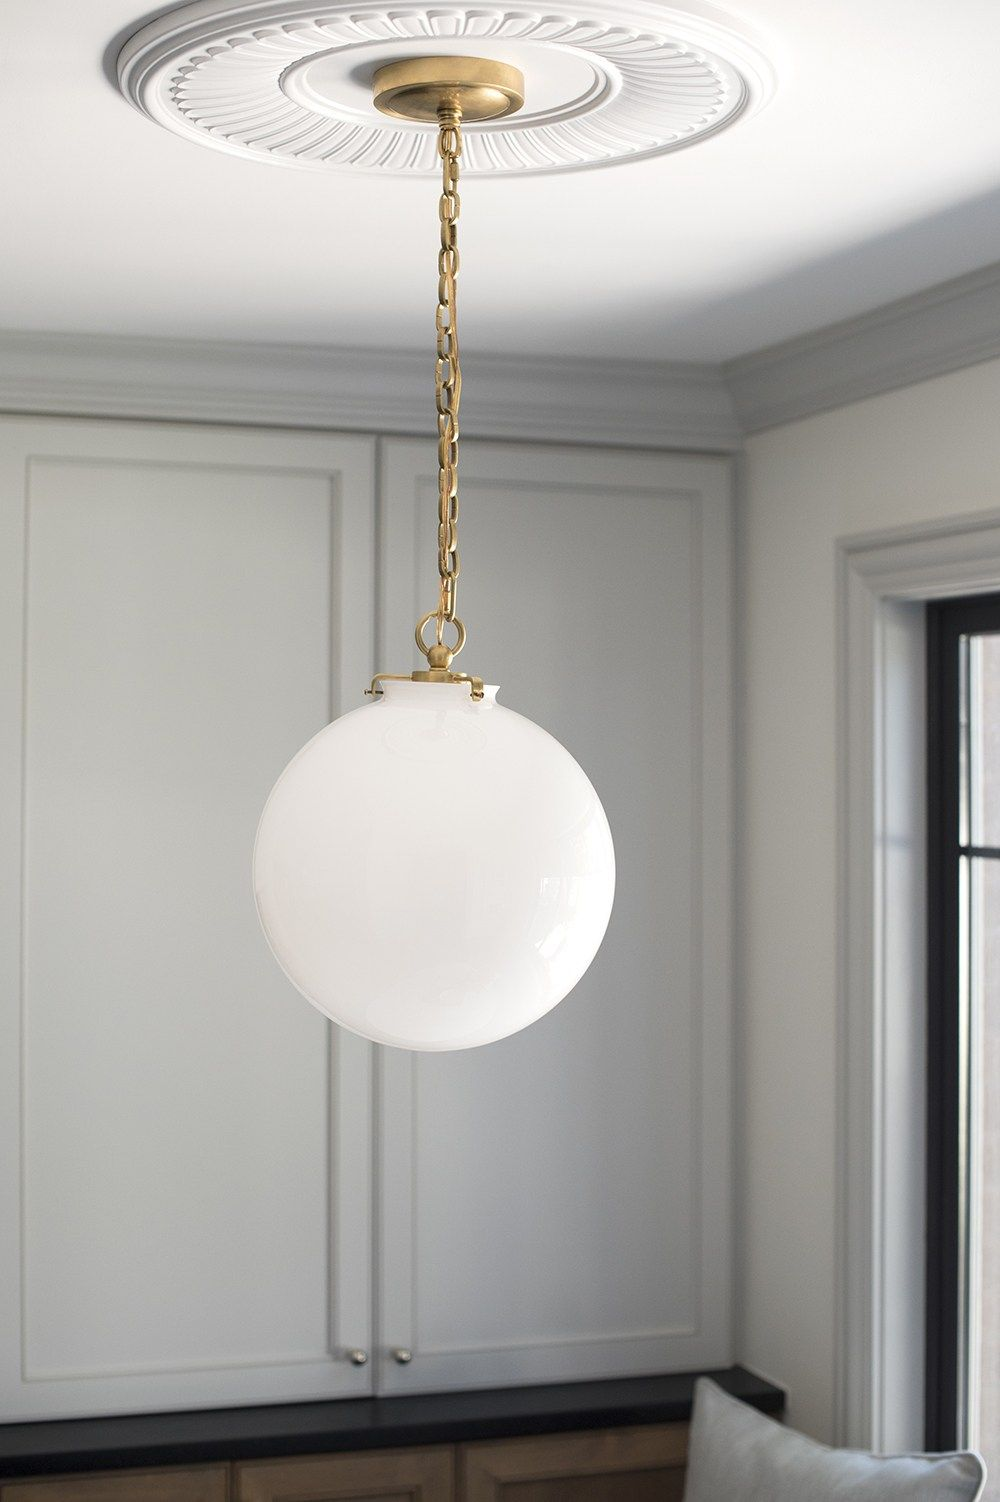 Pin By Staver Kaufman On Hoxton Brass Pendant Lights Kitchen Ceiling Medallions Brass Pendant Light